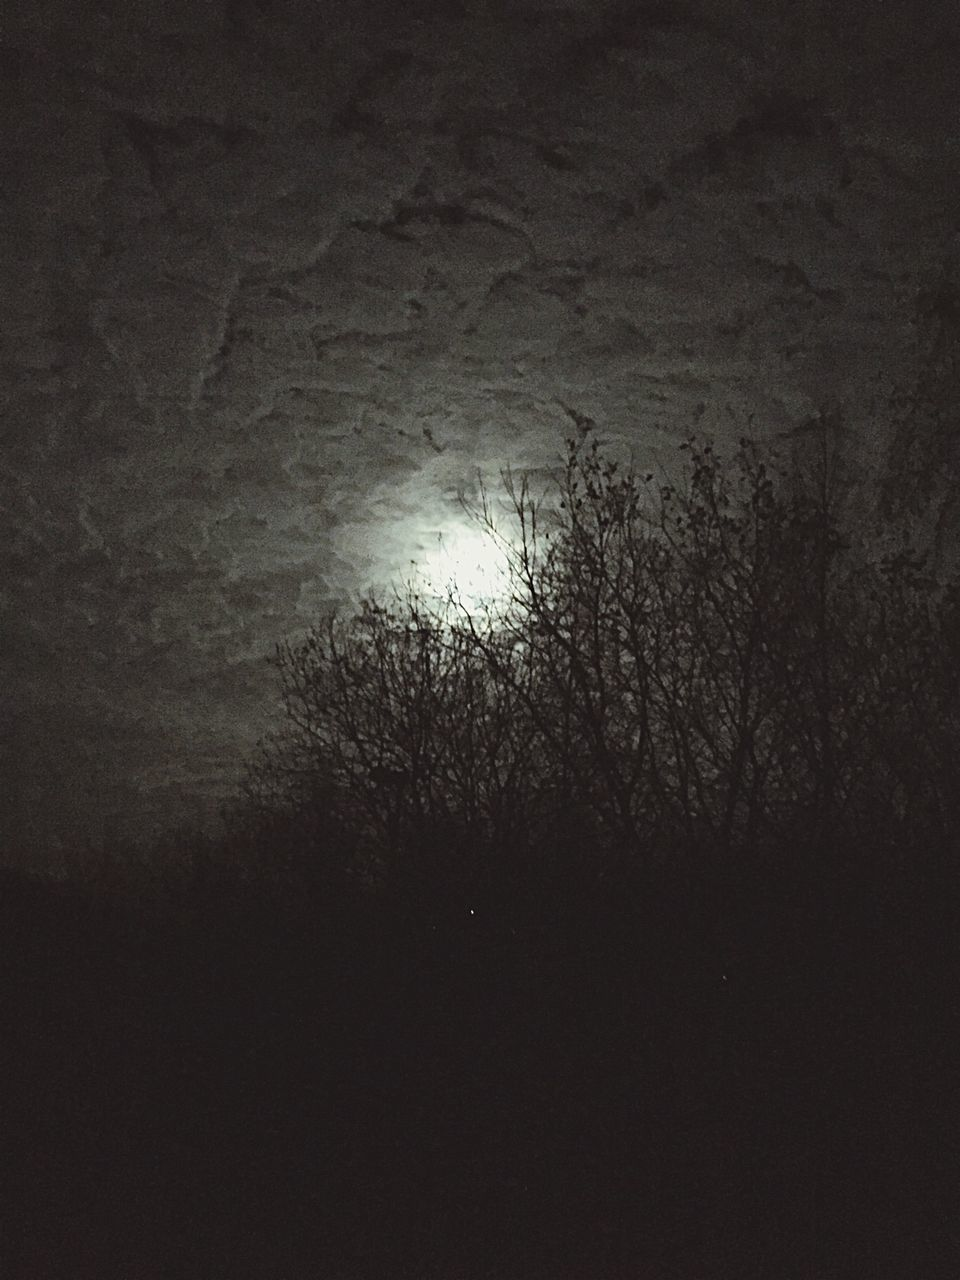 night, moon, dark, nature, no people, bare tree, low angle view, outdoors, tree, scenics, beauty in nature, sky, astronomy